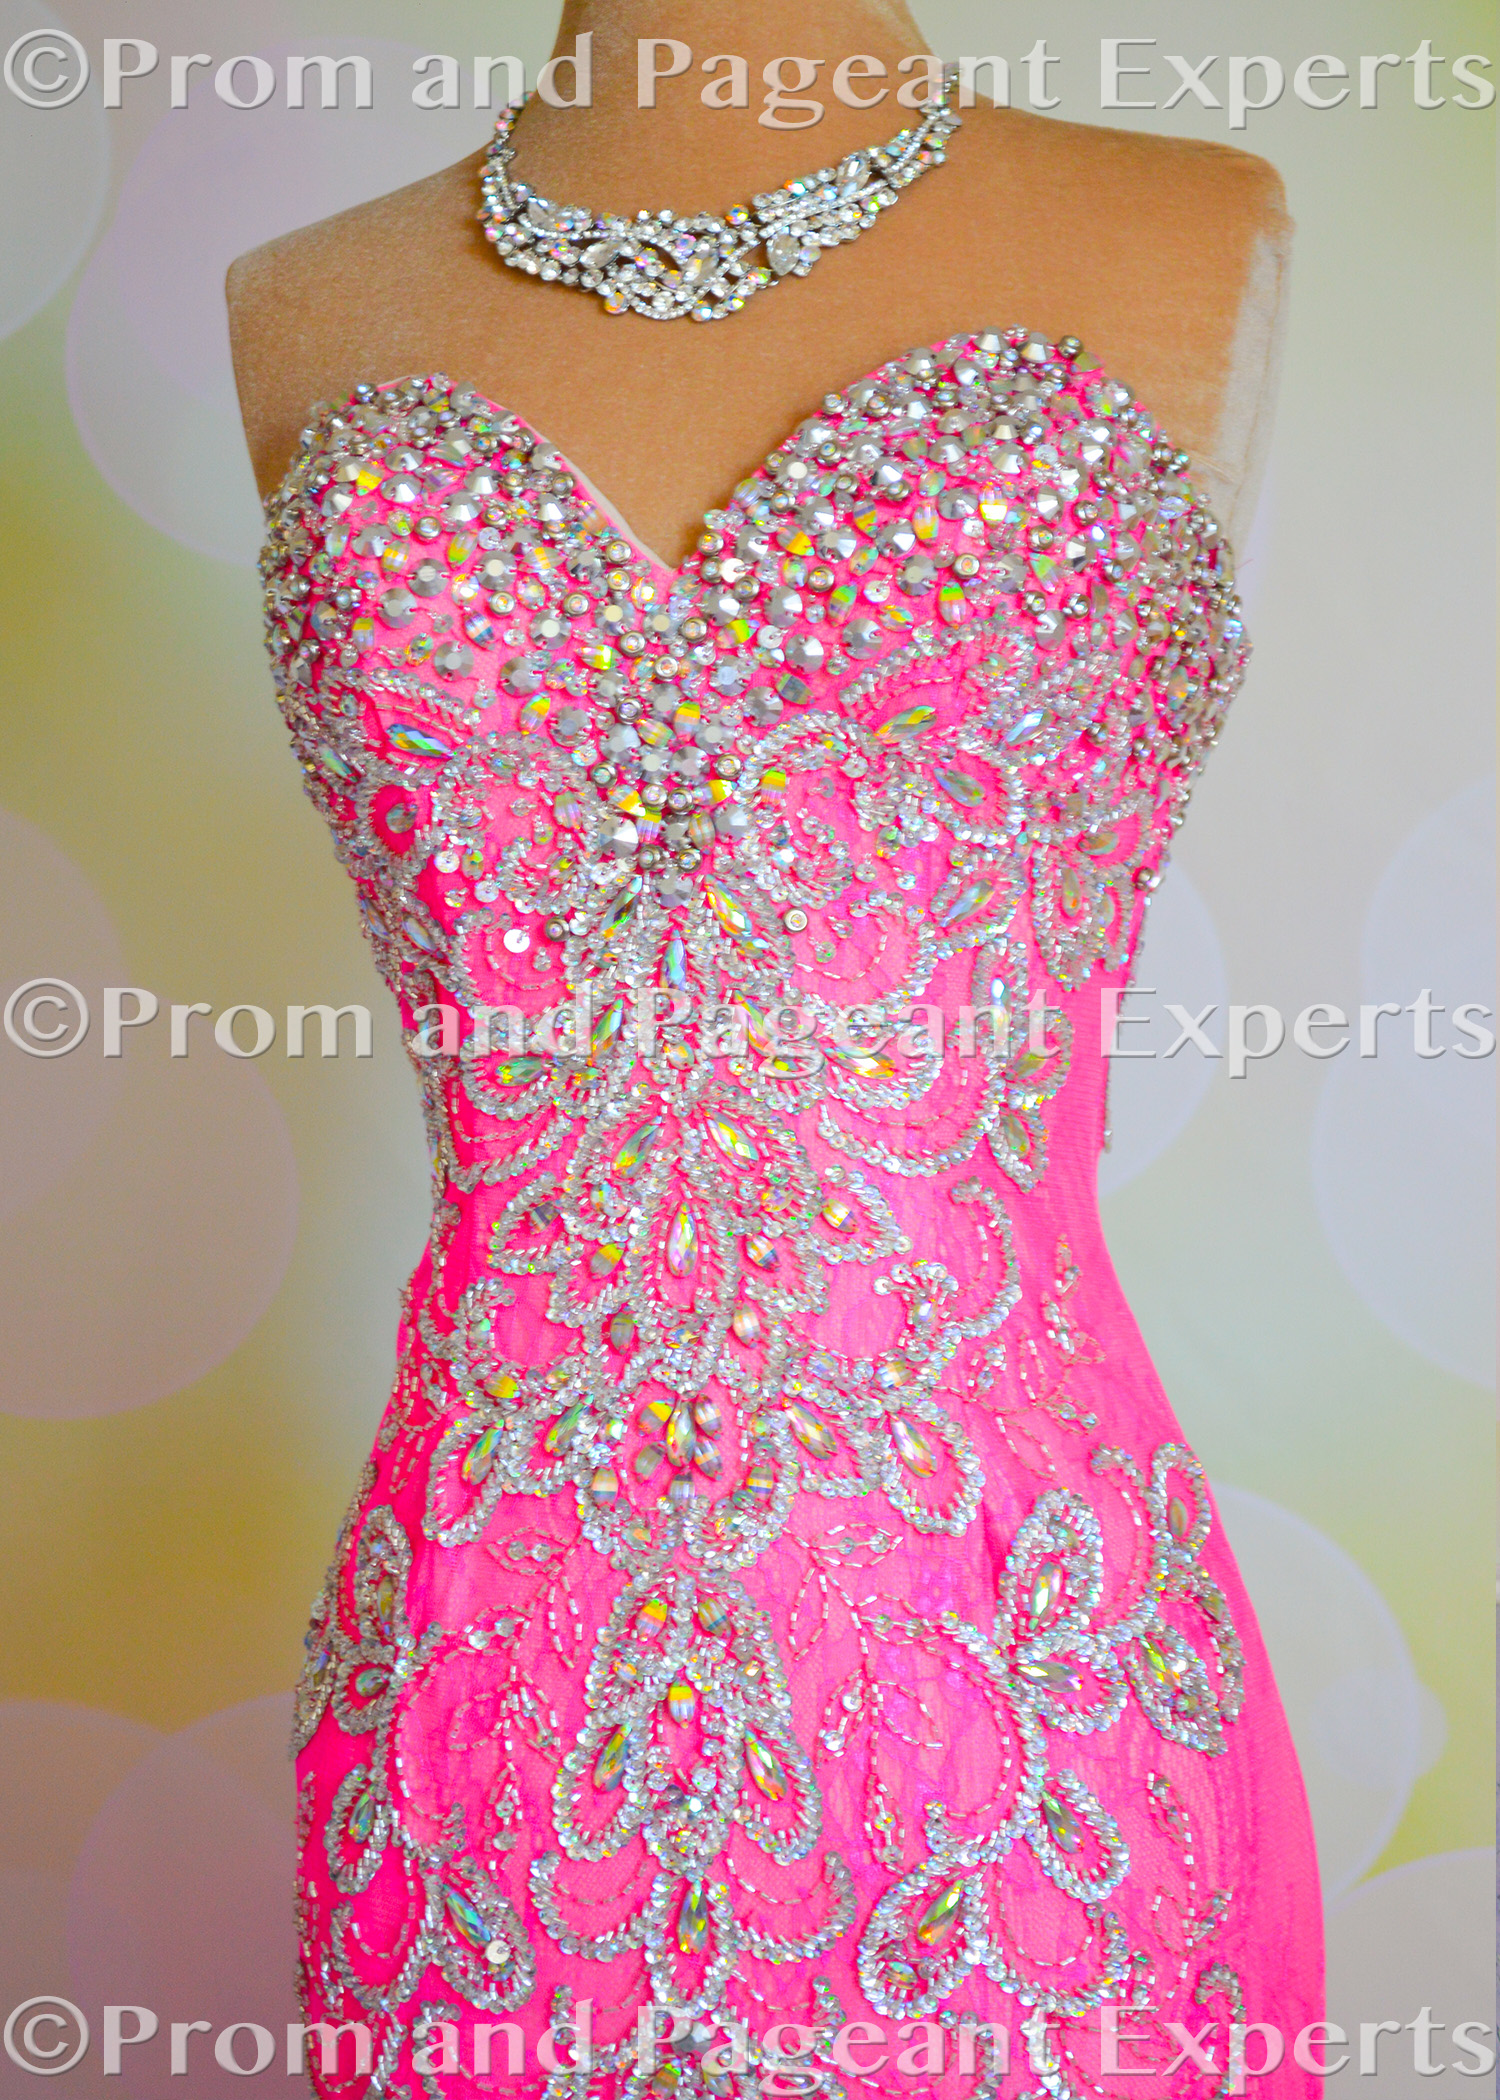 Hot Pink Lace Mac Duggal Gown Sold By Prom And Pageant Experts